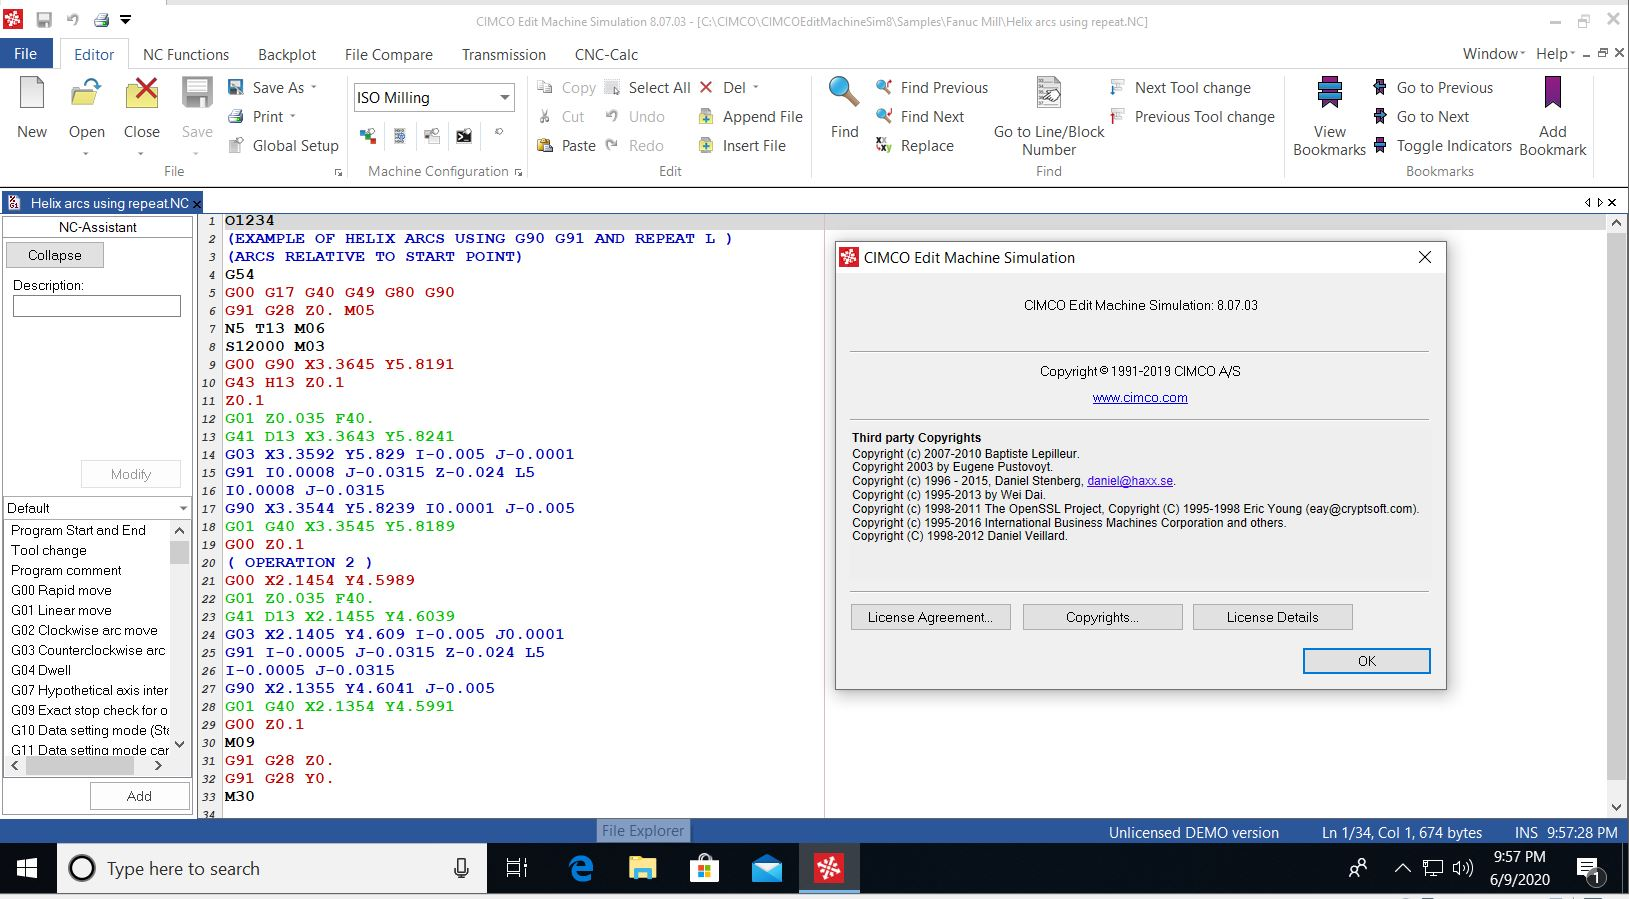 Working with CIMCO Machine Simulation 8.07.03 full license